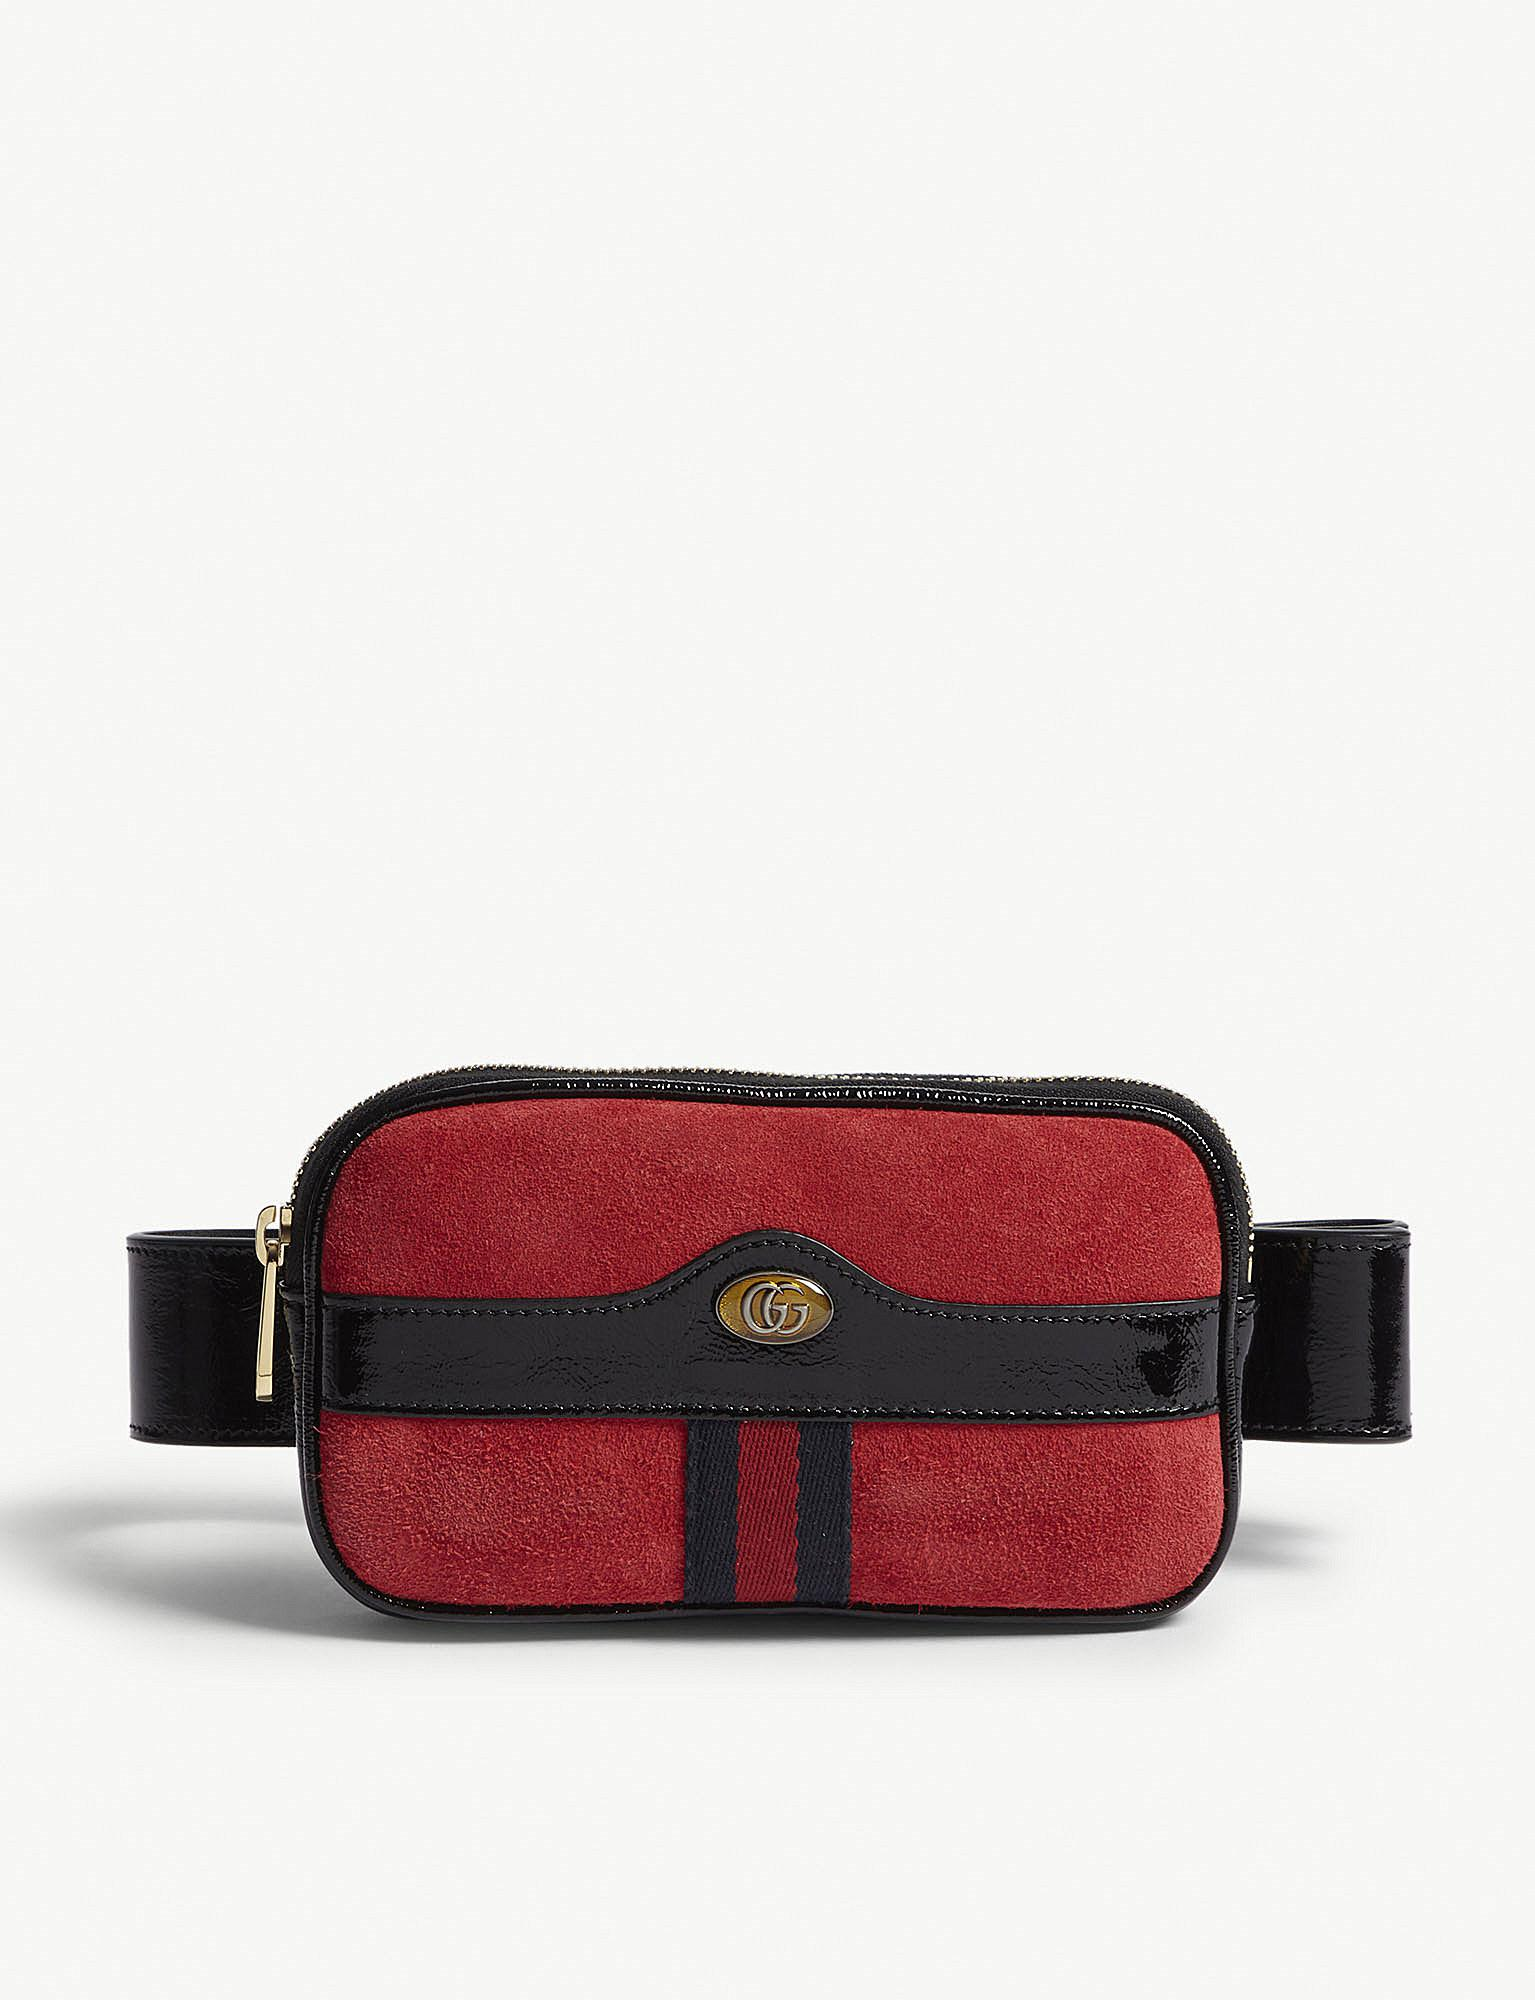 6cd46cc402c Gucci Ophidia Small Leather And Suede Belt Bag in Red - Lyst